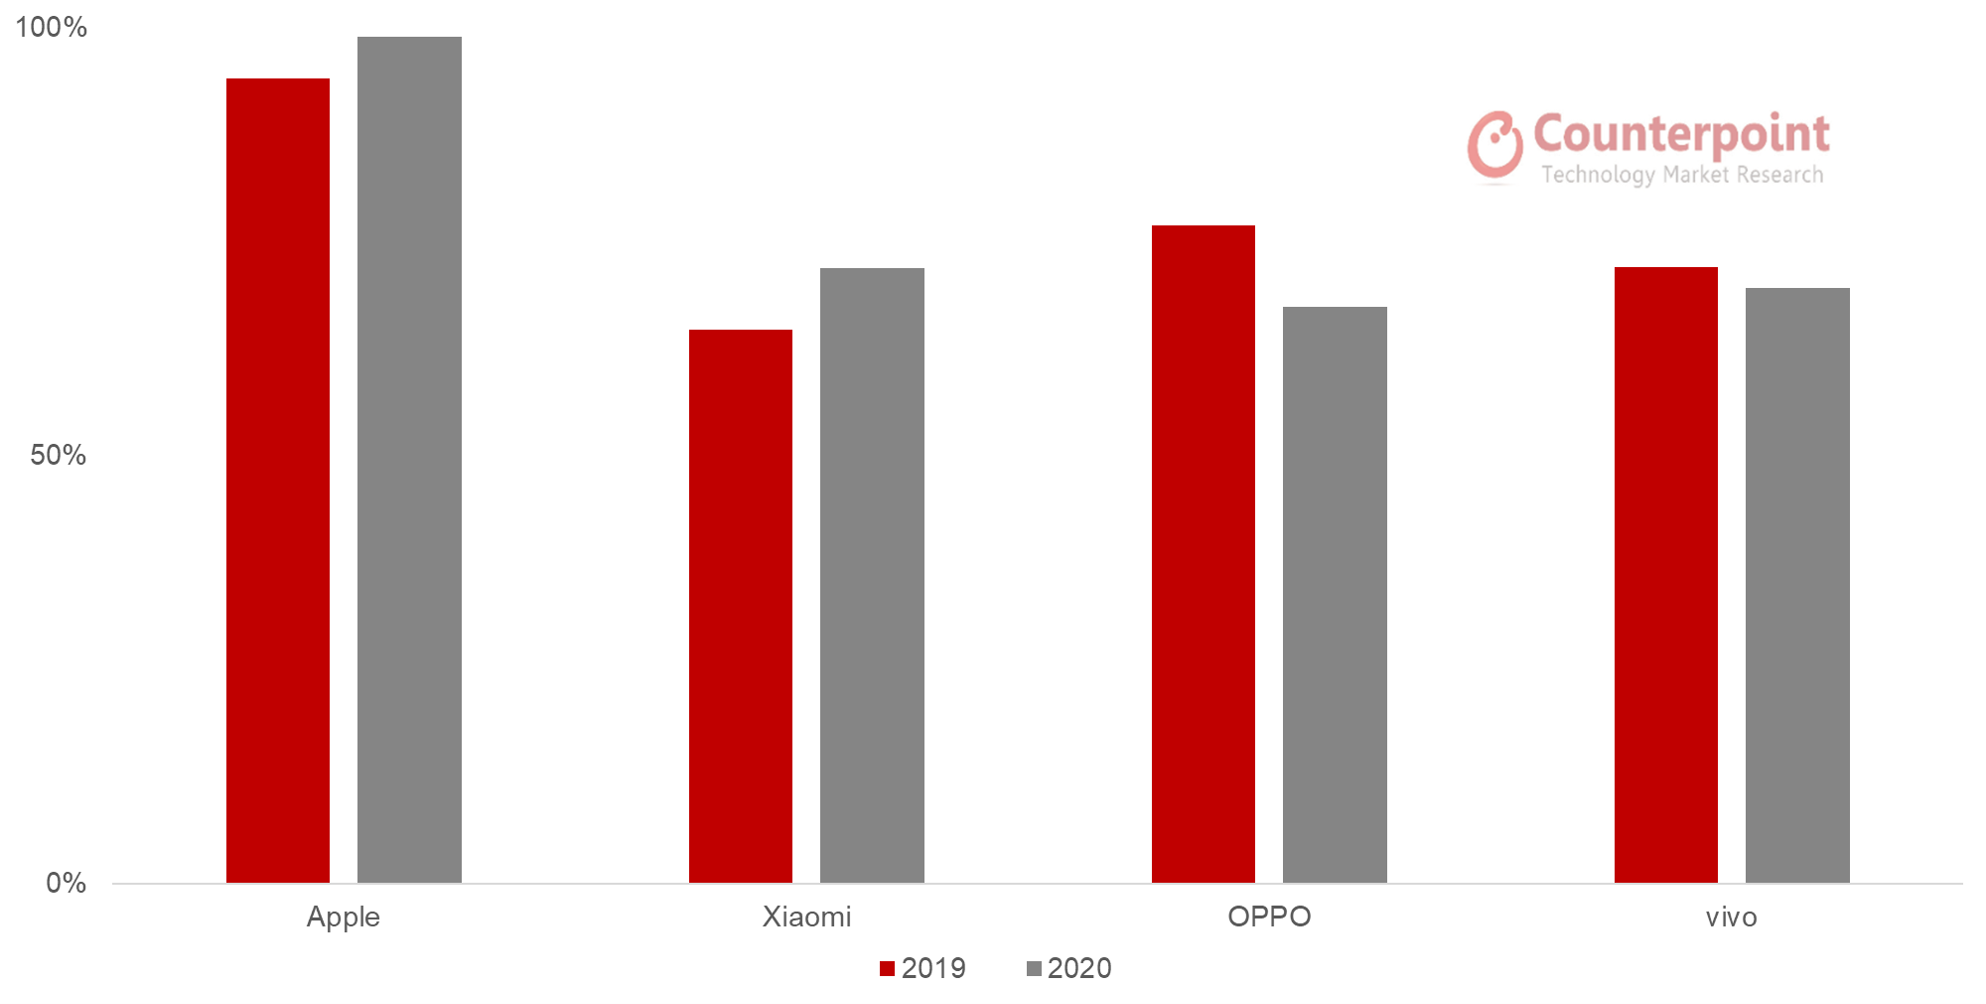 Counterpoint Research China's Share in Global Handset Production by Major OEM